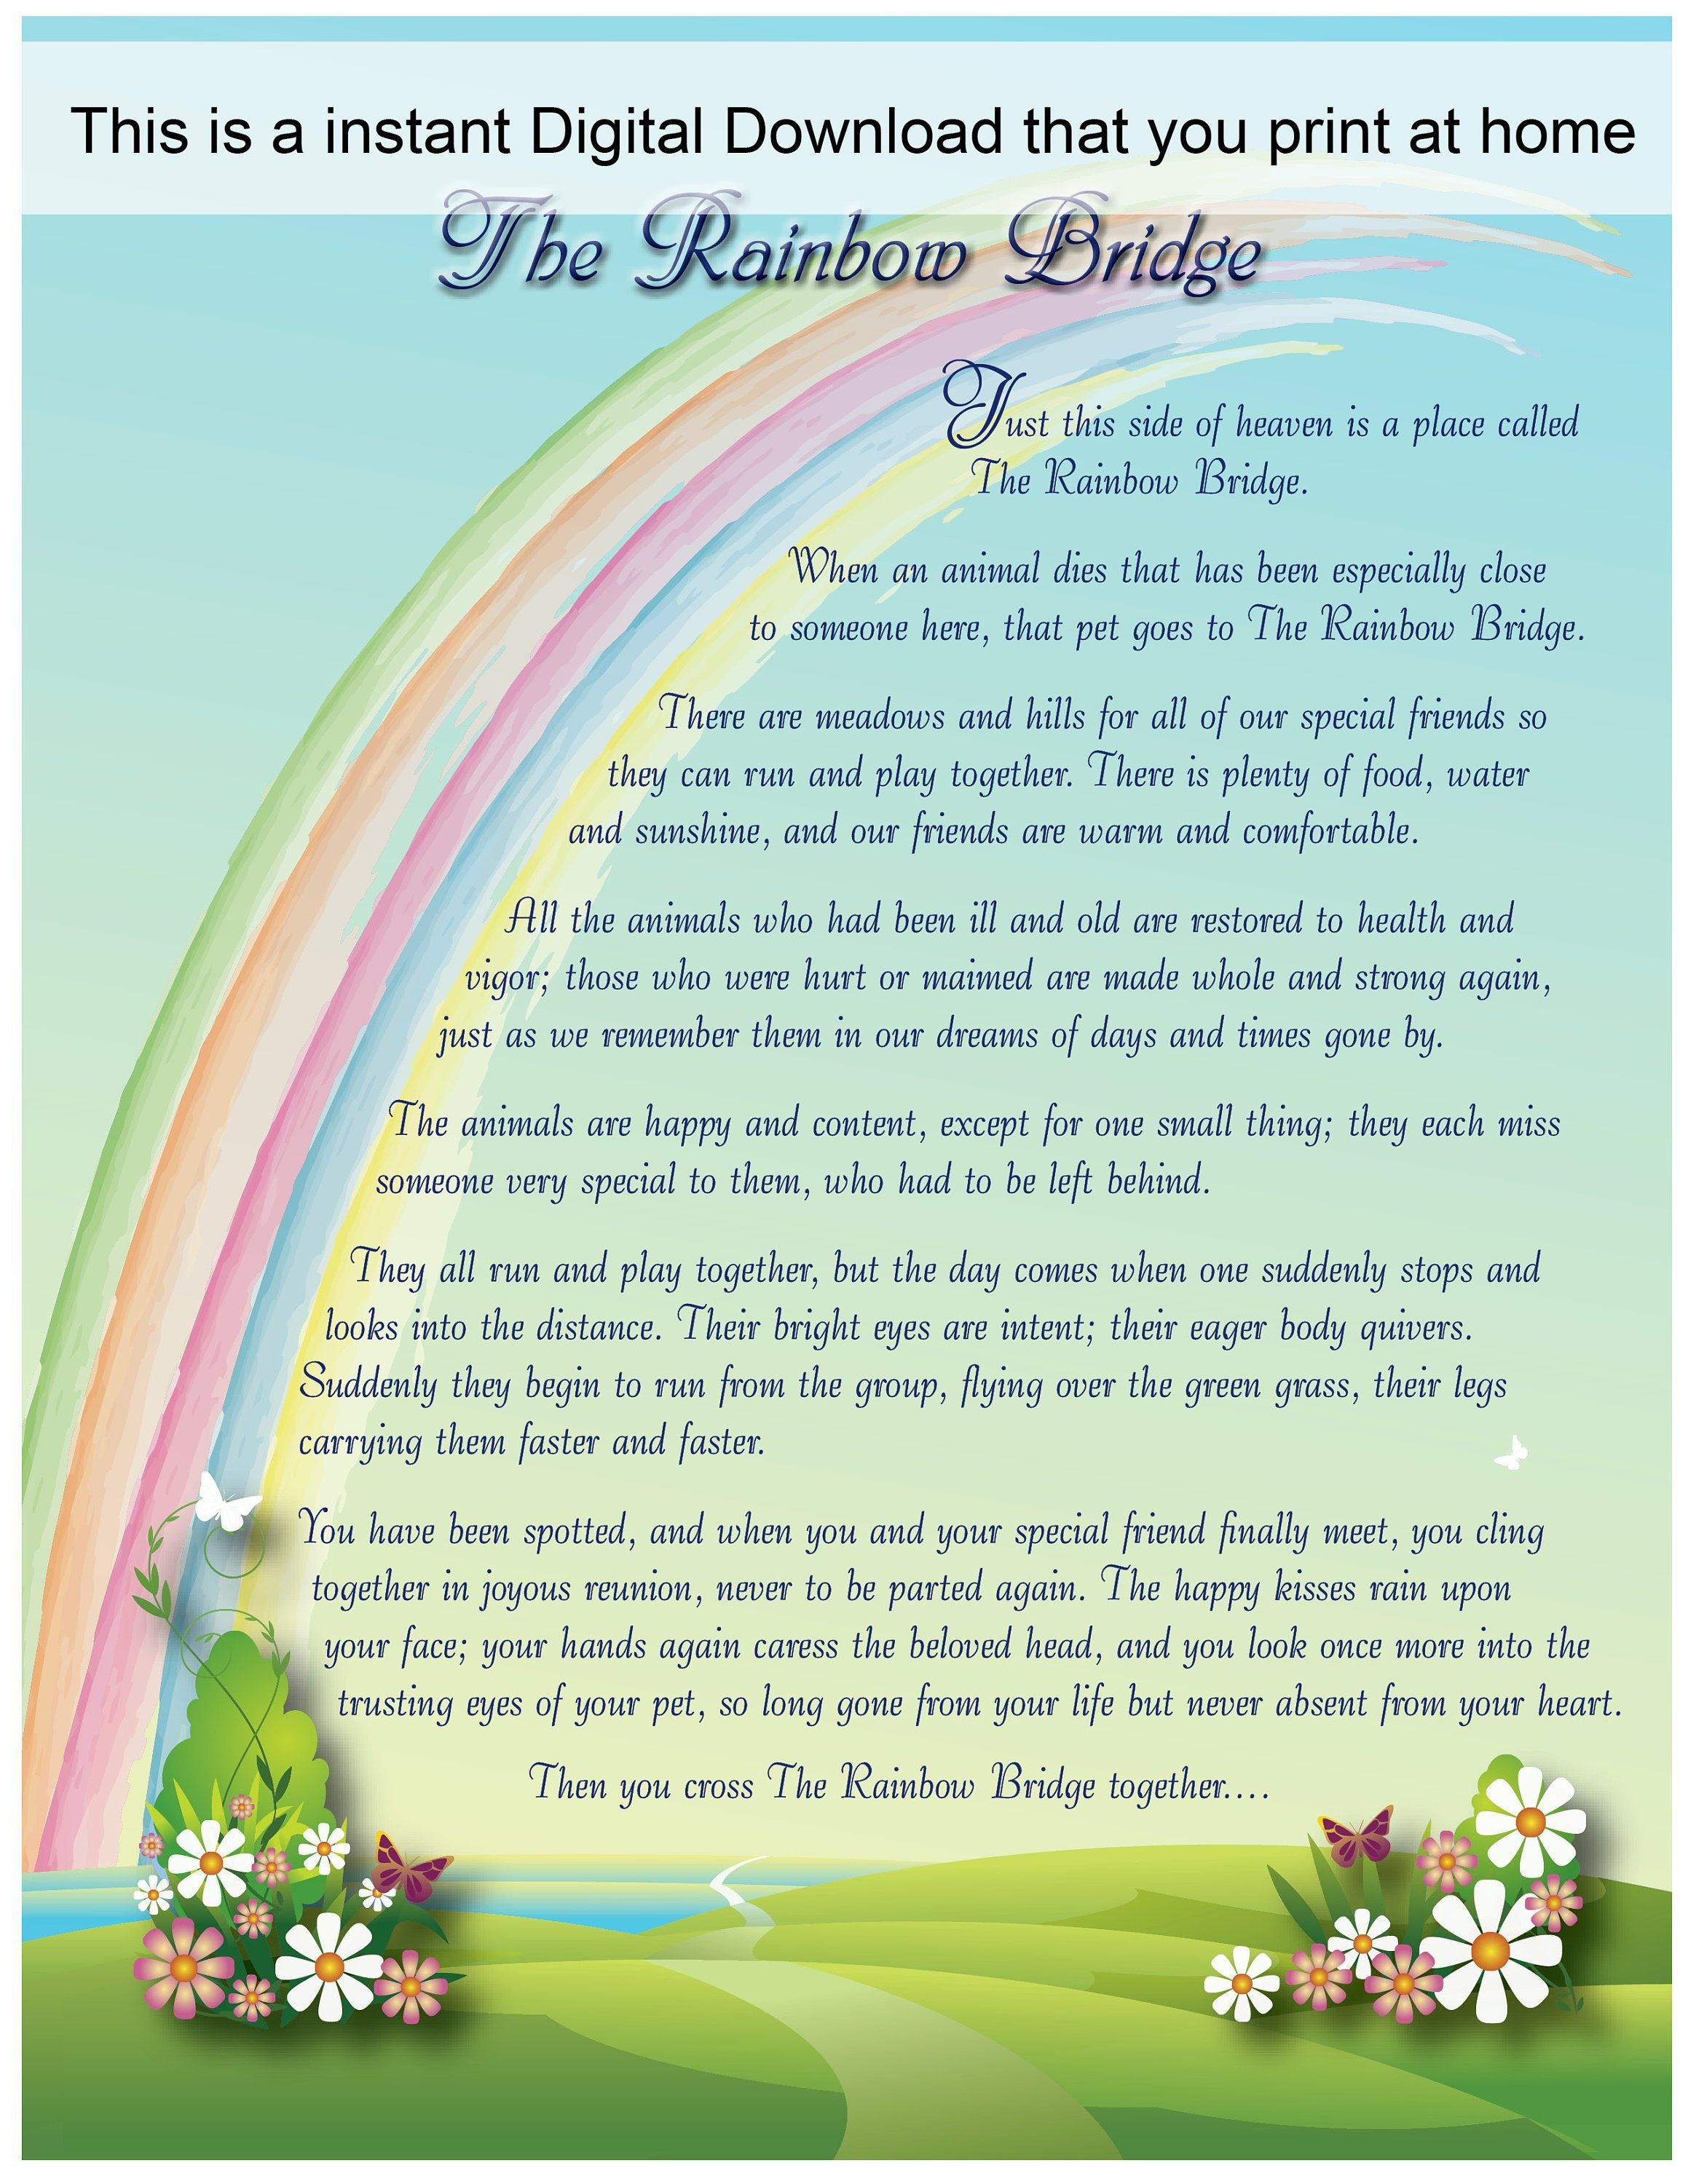 picture about Rainbow Bridge Poem for Dogs Printable titled Rainbow Bridge Electronic Print, Rainbow Bridge Poem, Rainbow Bridge pet dog, Rainbow Bridge cat, Rainbow Bridge reward, Puppy decline,Around the Rainbow US